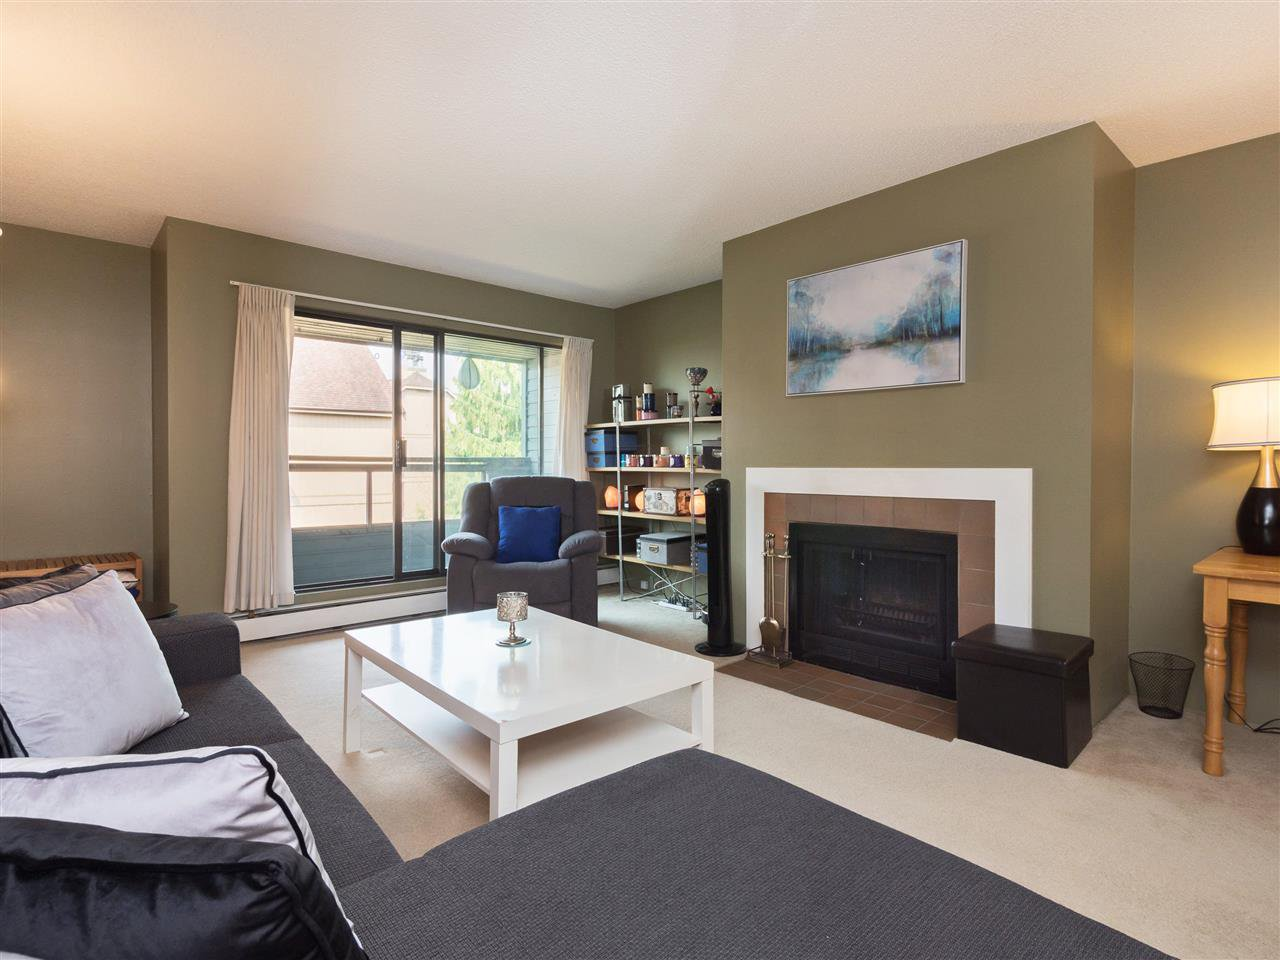 """Main Photo: 315 8591 WESTMINSTER Highway in Richmond: Brighouse Condo for sale in """"LANDSDOWNE GROVE"""" : MLS®# R2209717"""